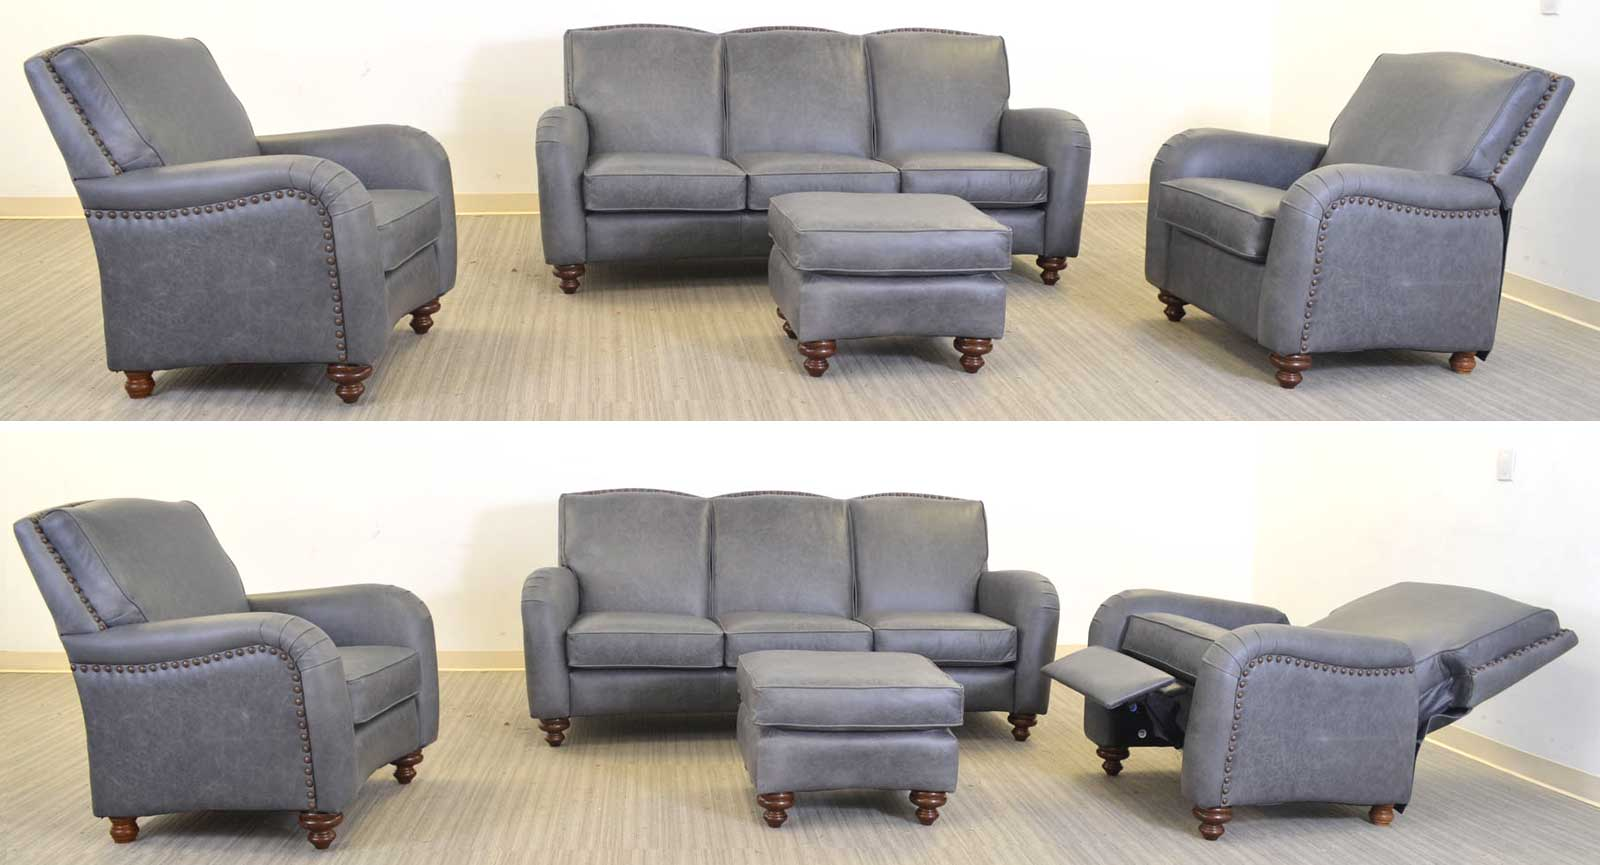 Chair Sofa Ottoman Pushback Incliner